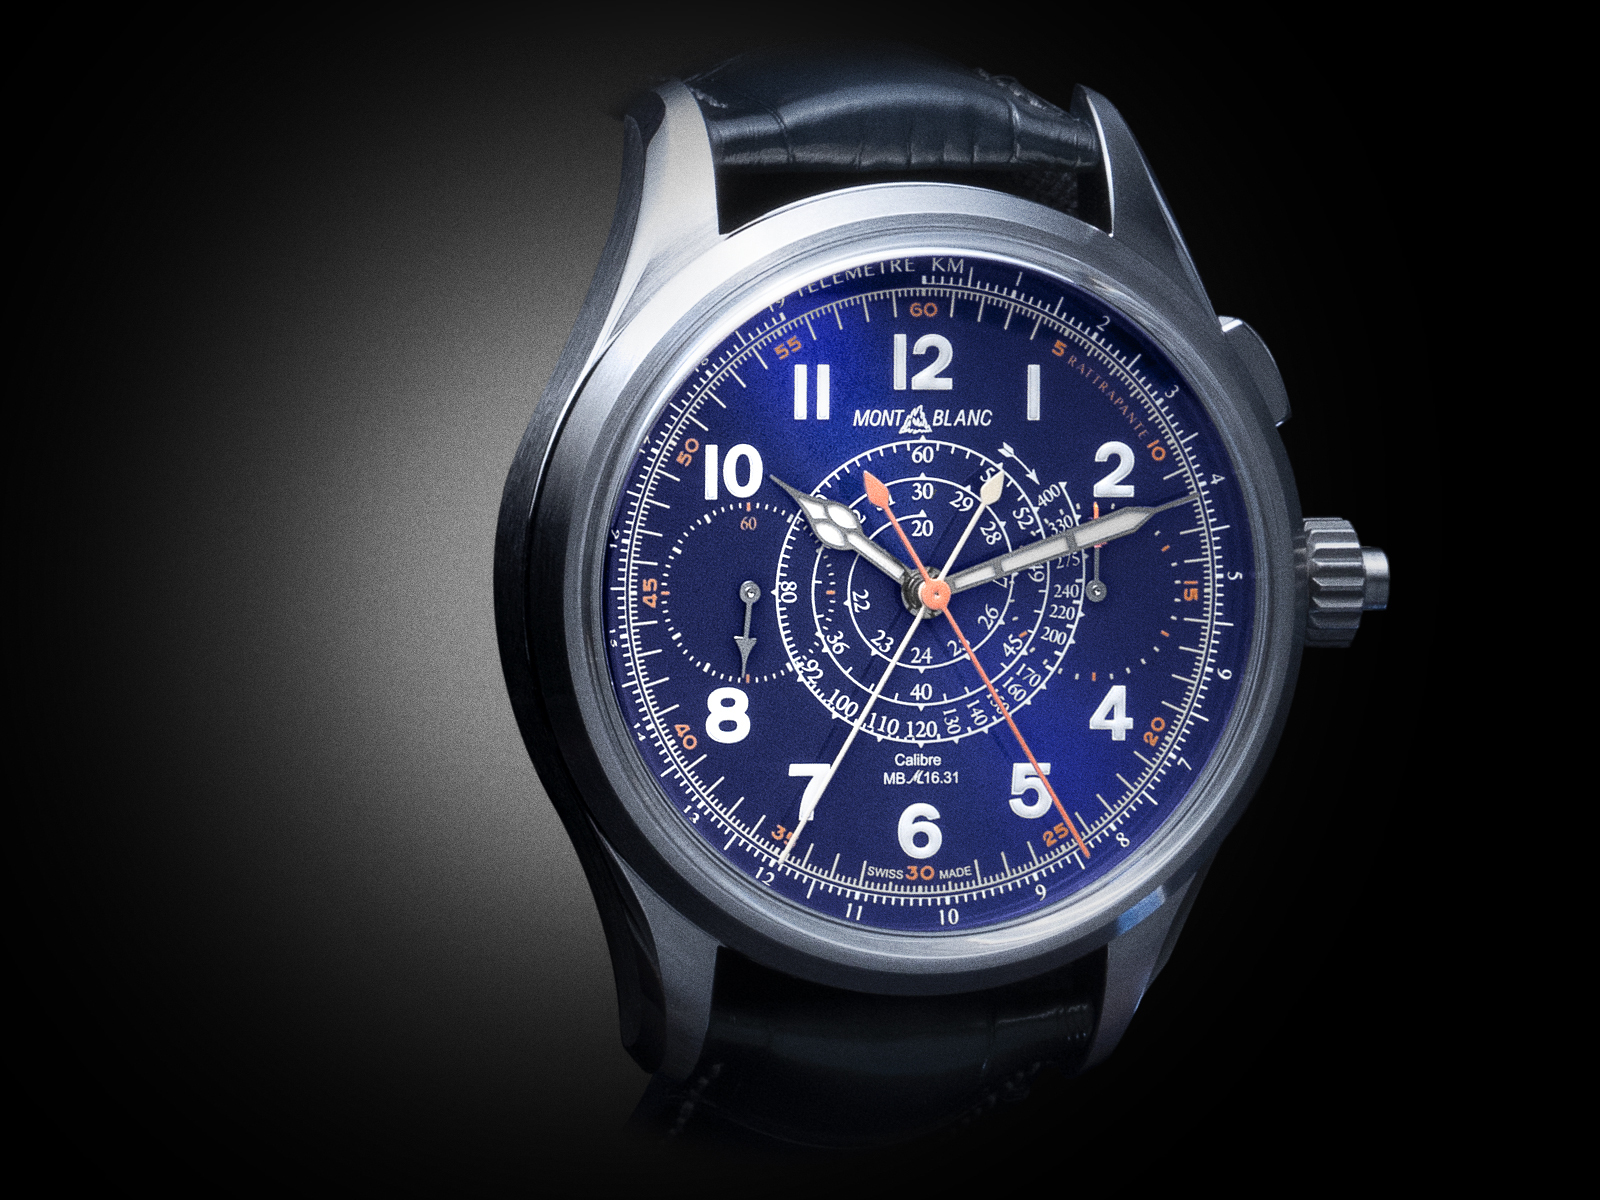 The Montblanc 1858 Split Seconds Chronograph LE 100 in titanium with grand feu blue enamel dial. - www.revolution.watch